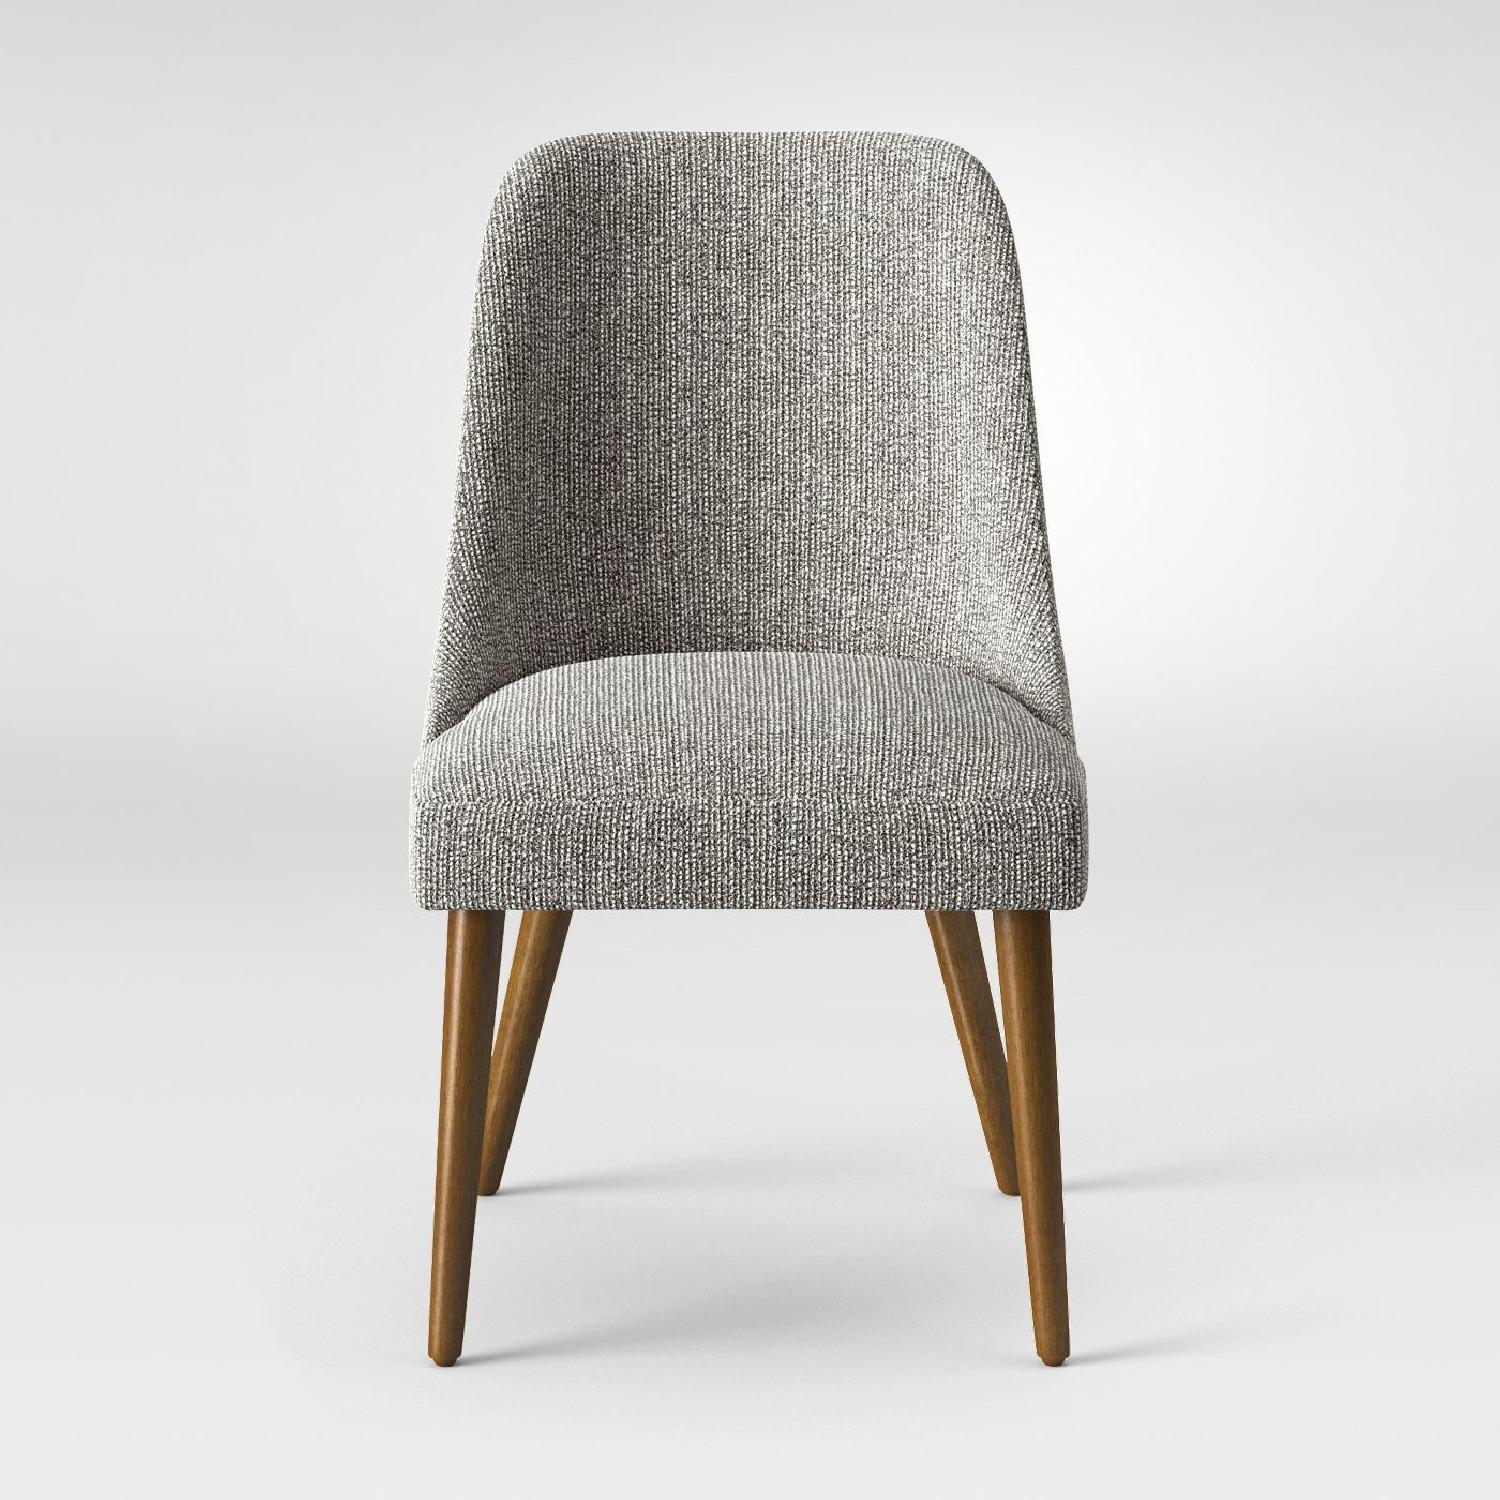 Target Project 62 Dining Chairs - image-1